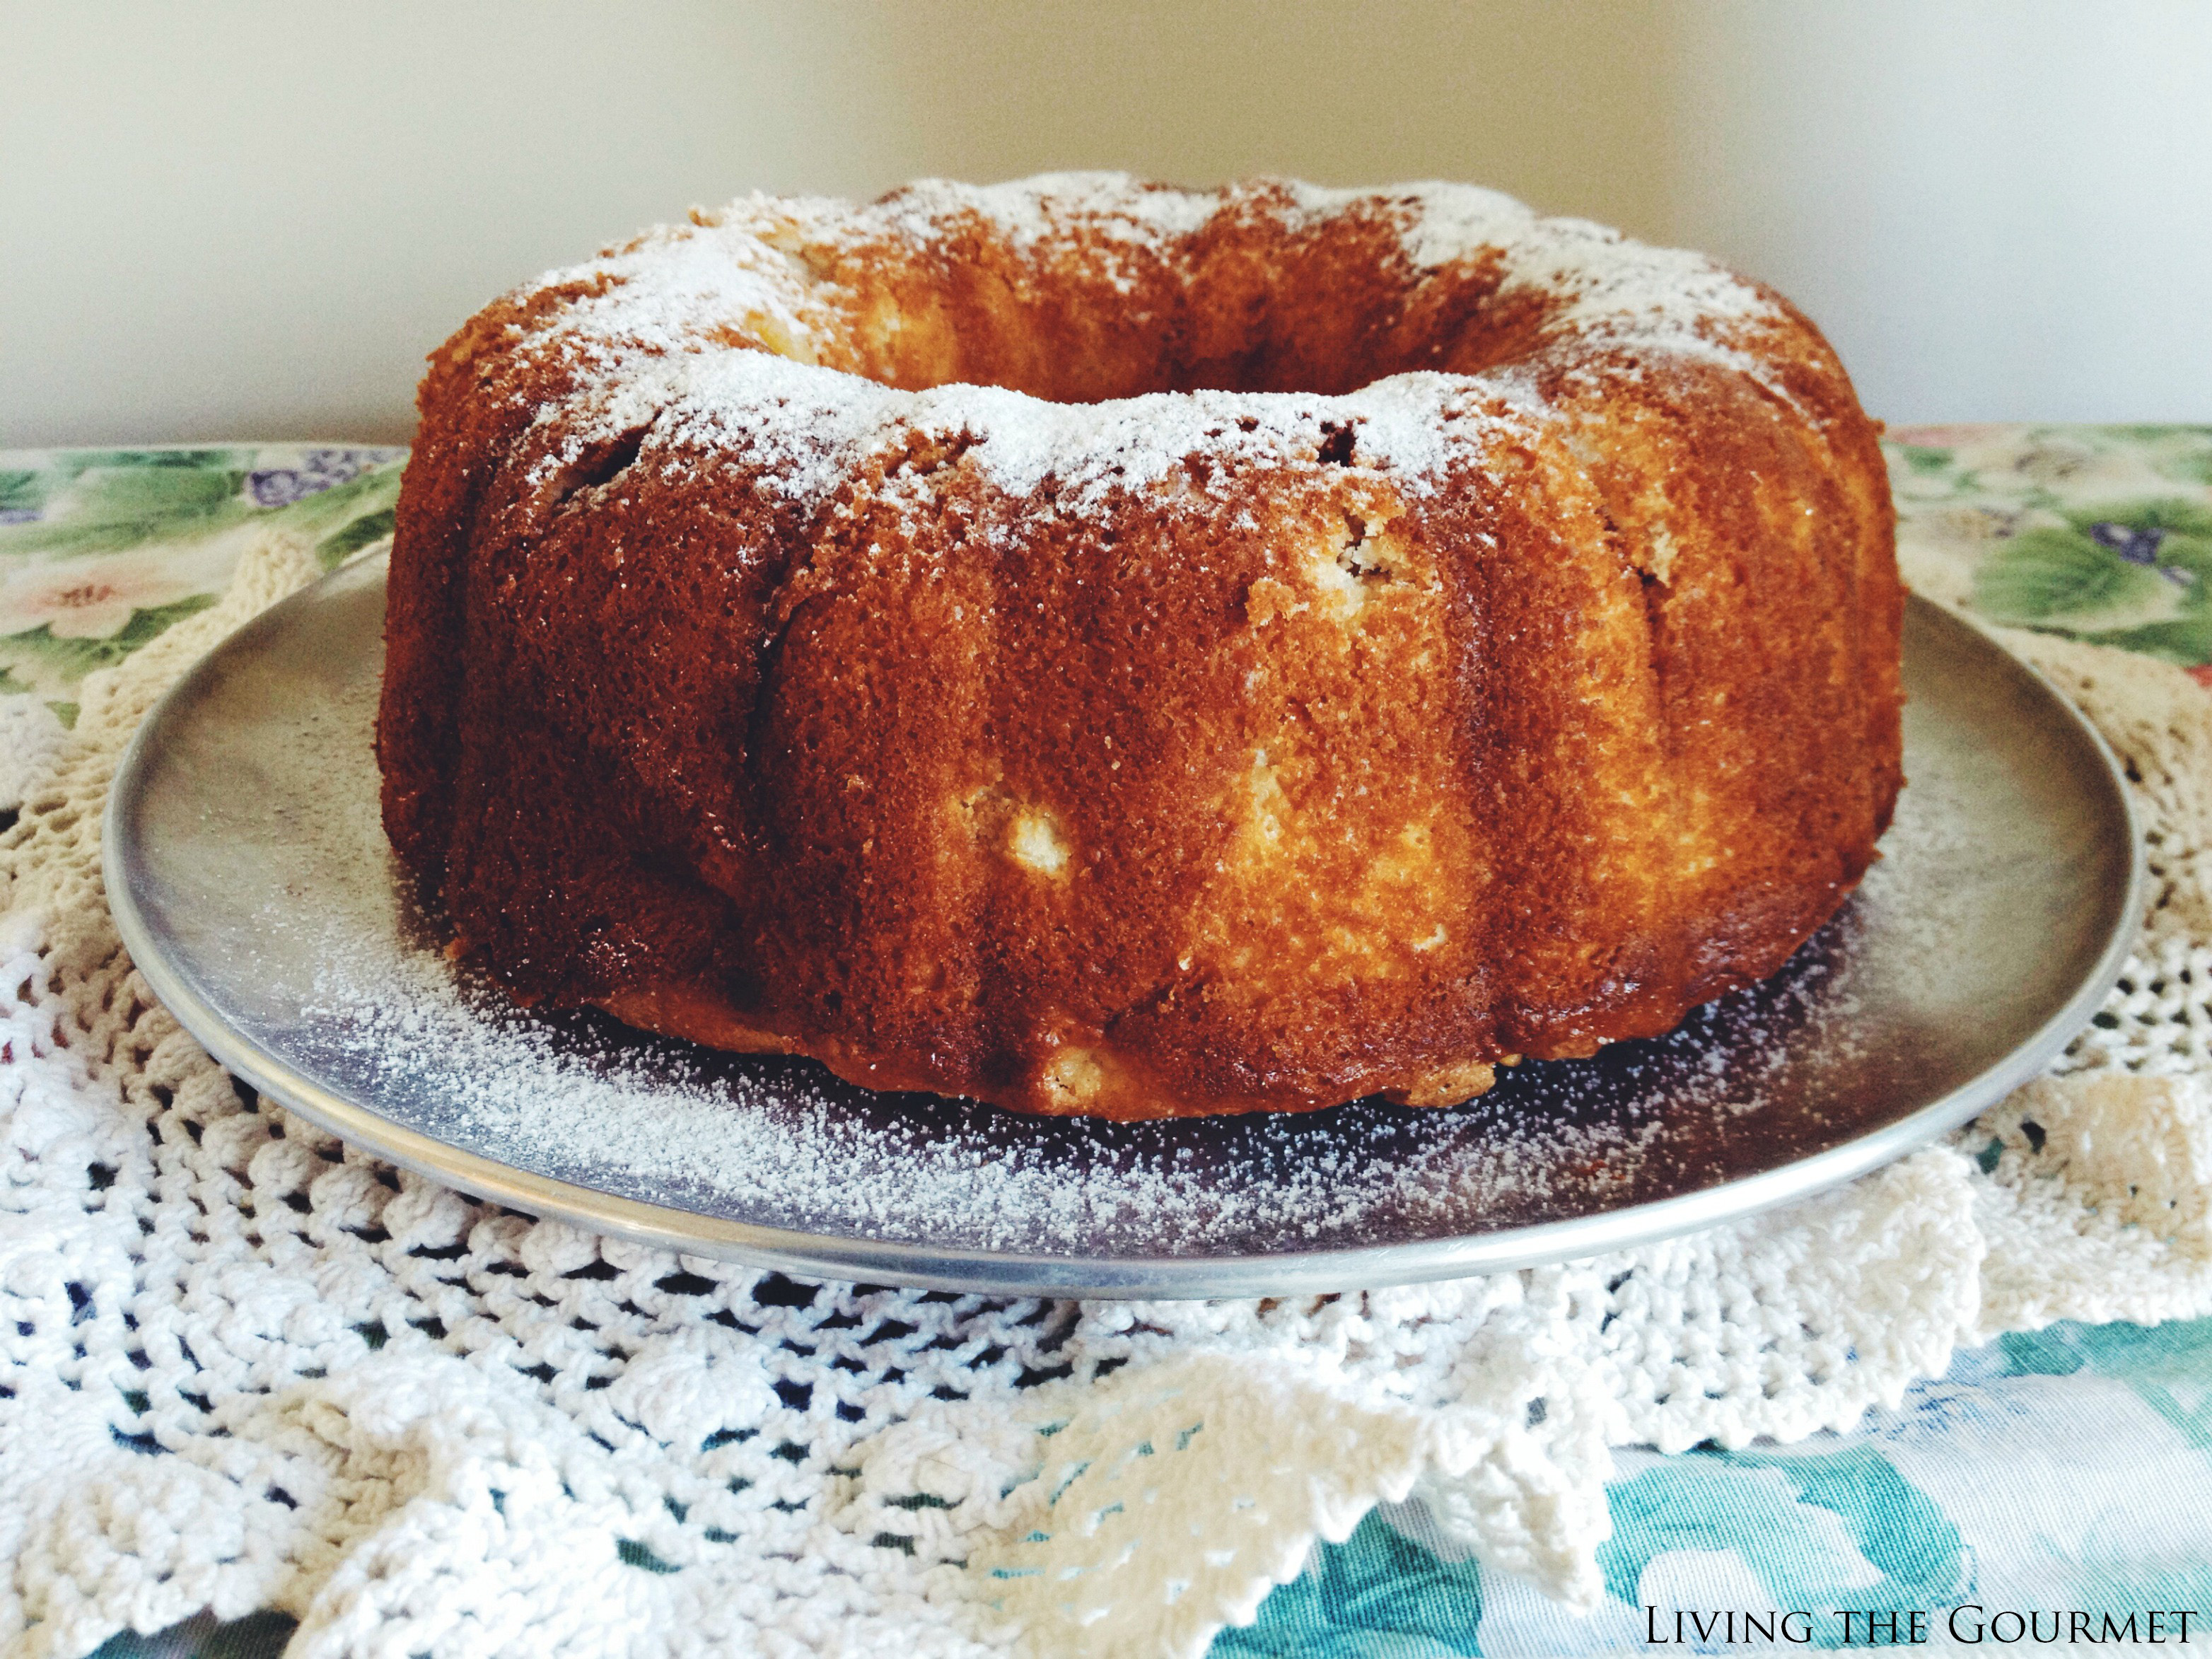 Living the Gourmet: Moist & Tasty Apple Sugar Bundt